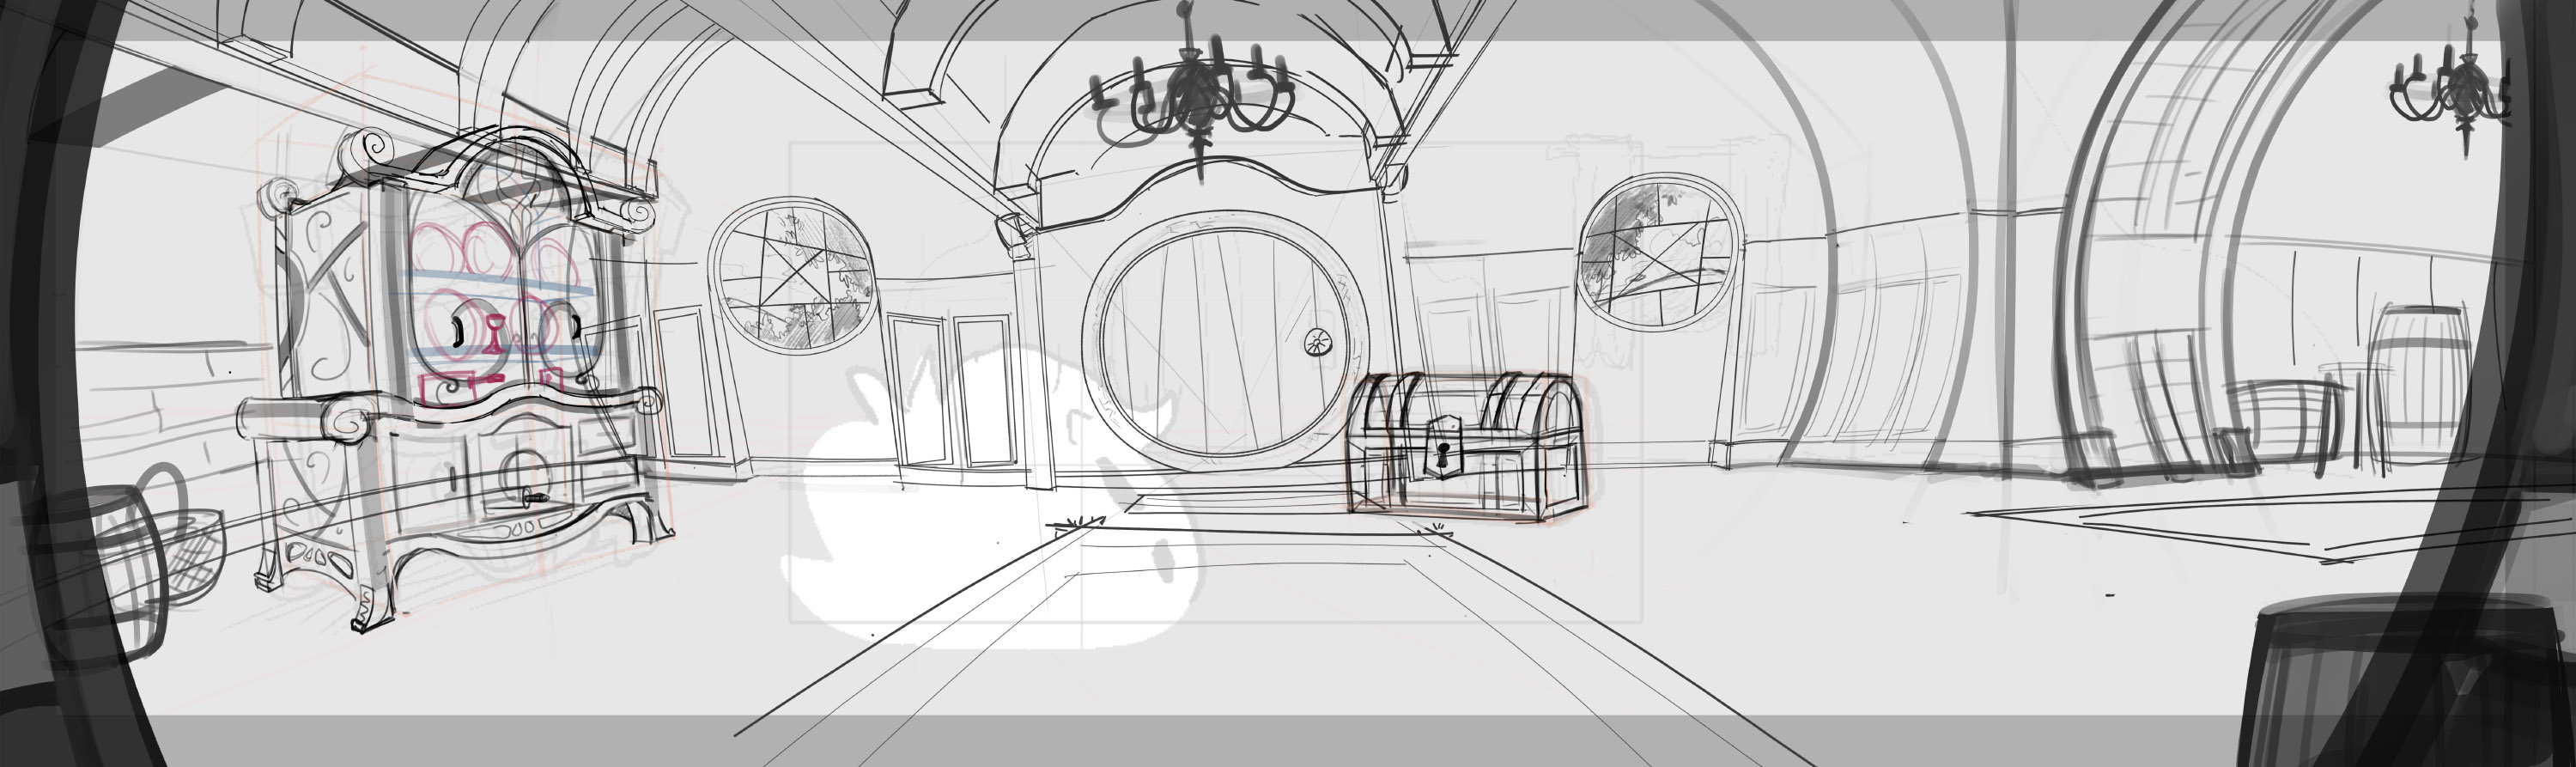 background rough